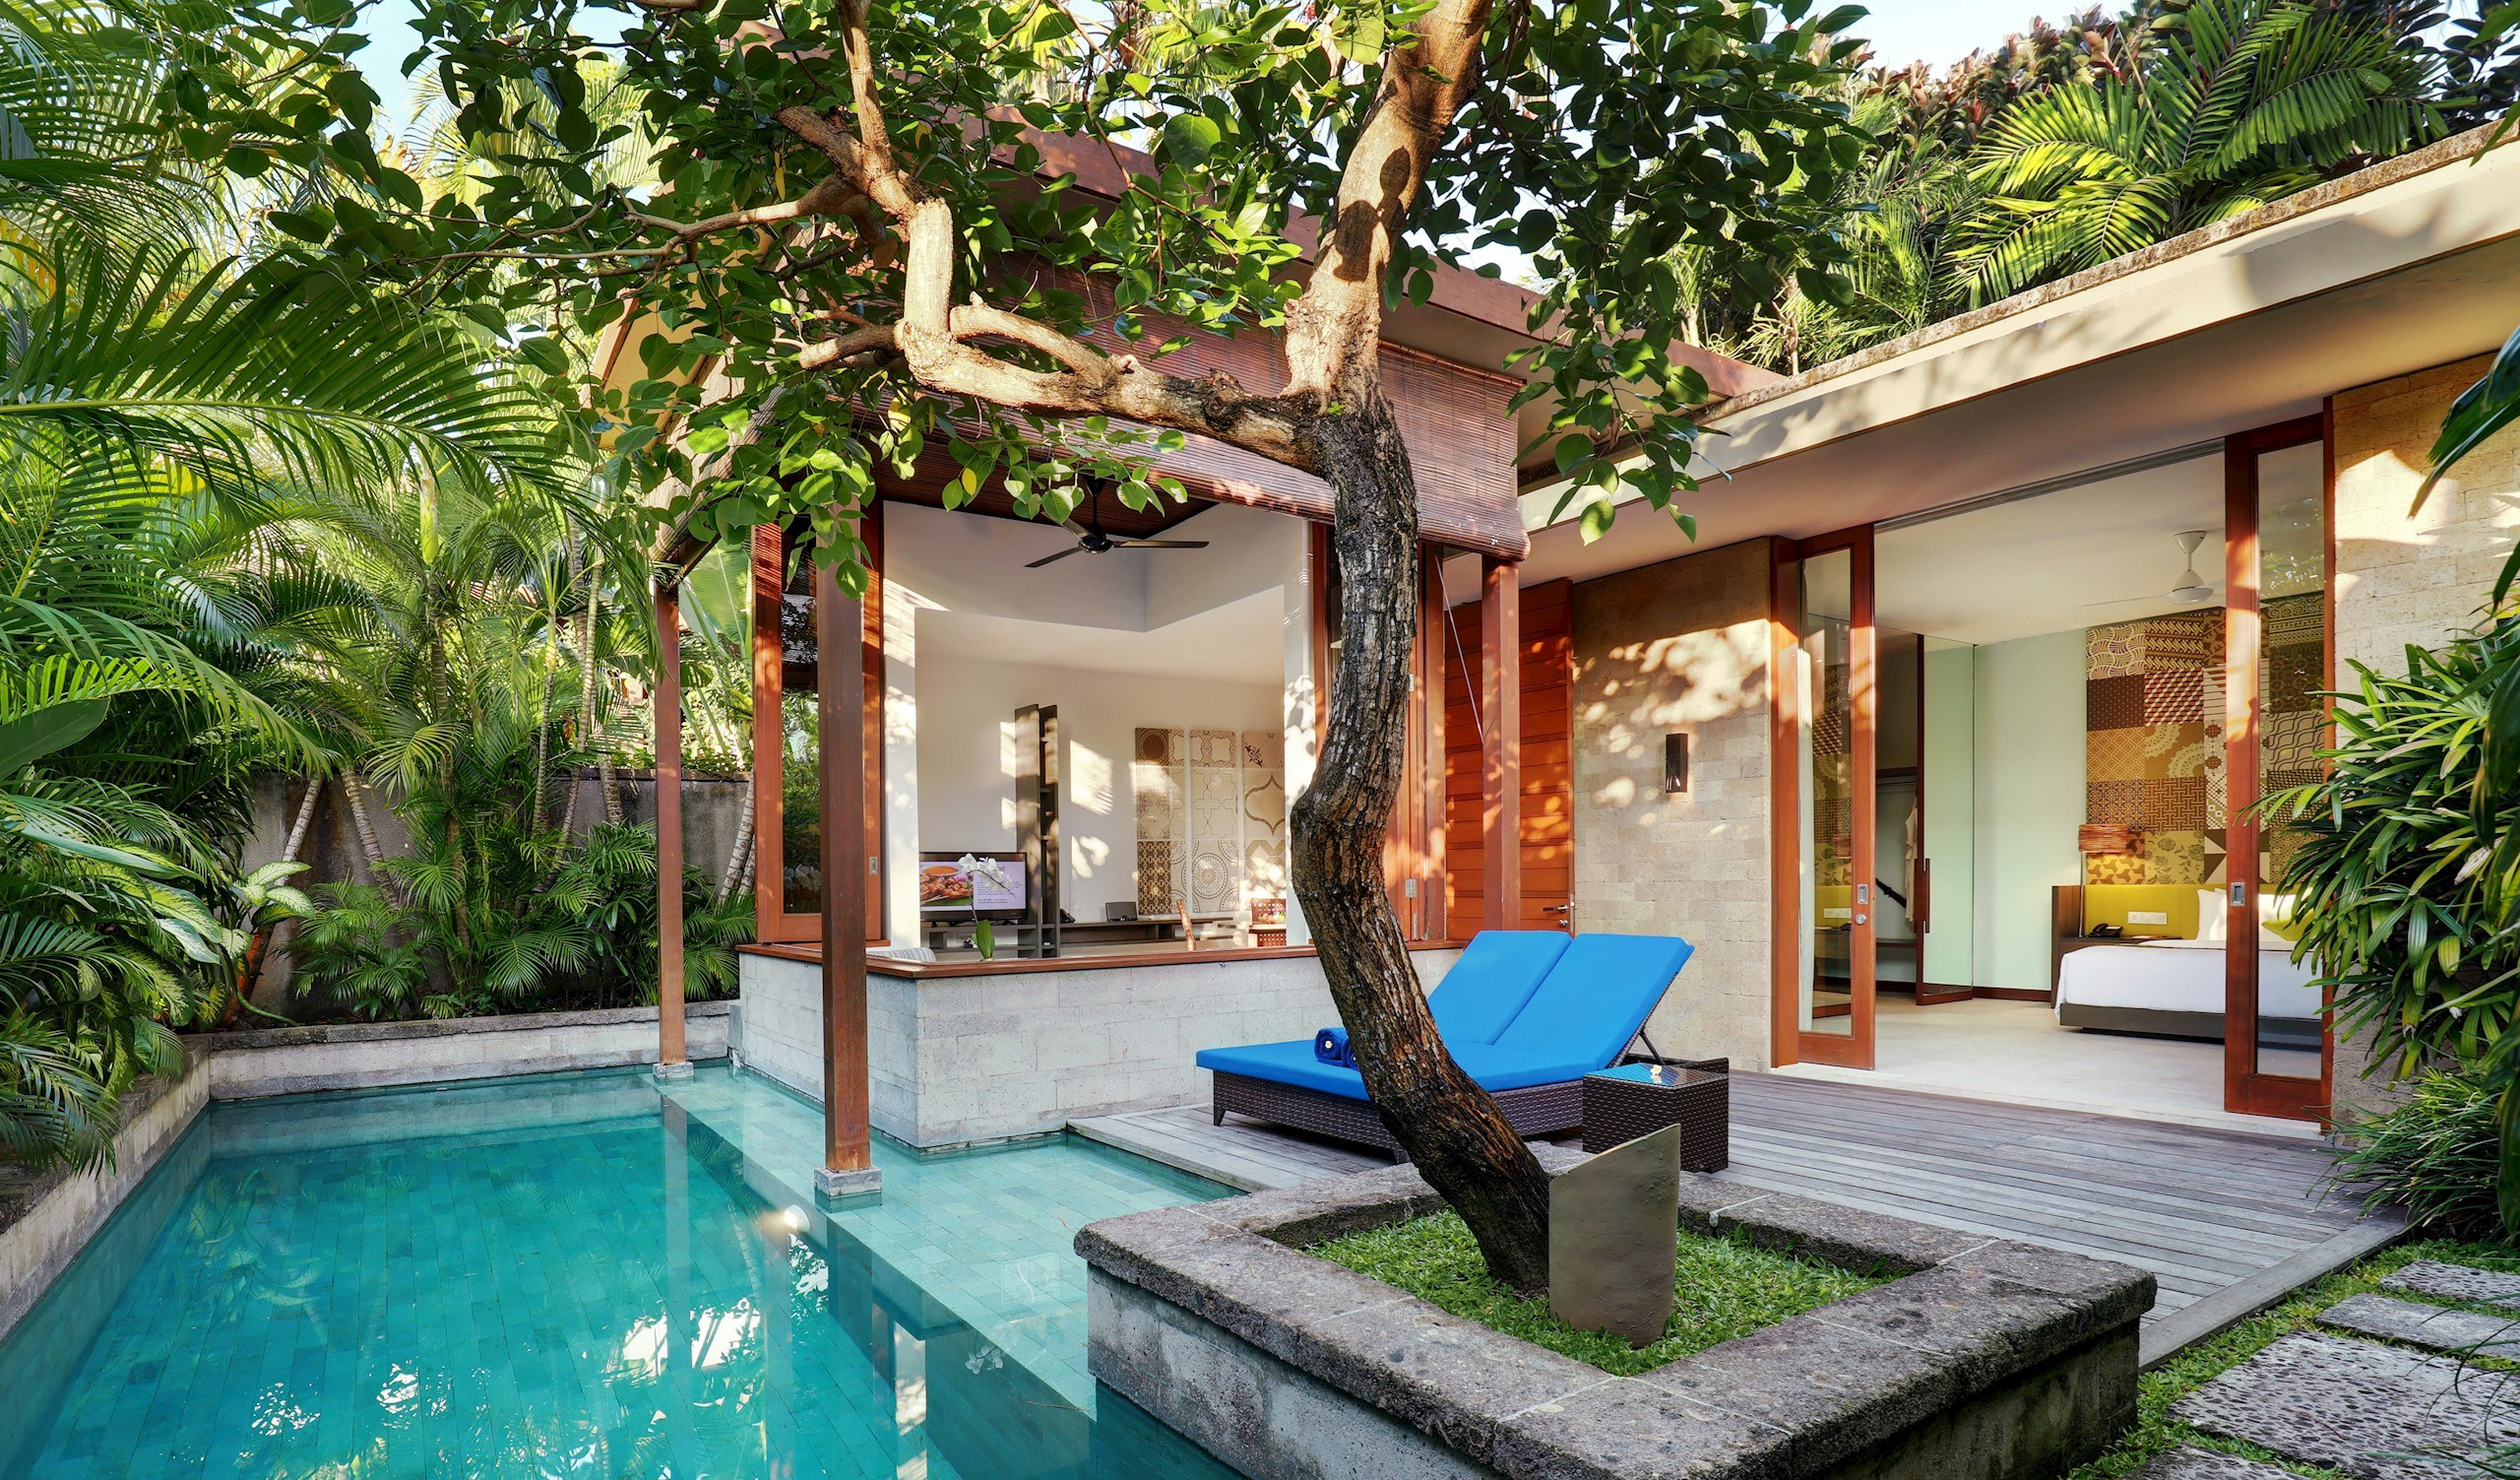 The Elysian Boutique Villa Hotel S01 on Bali